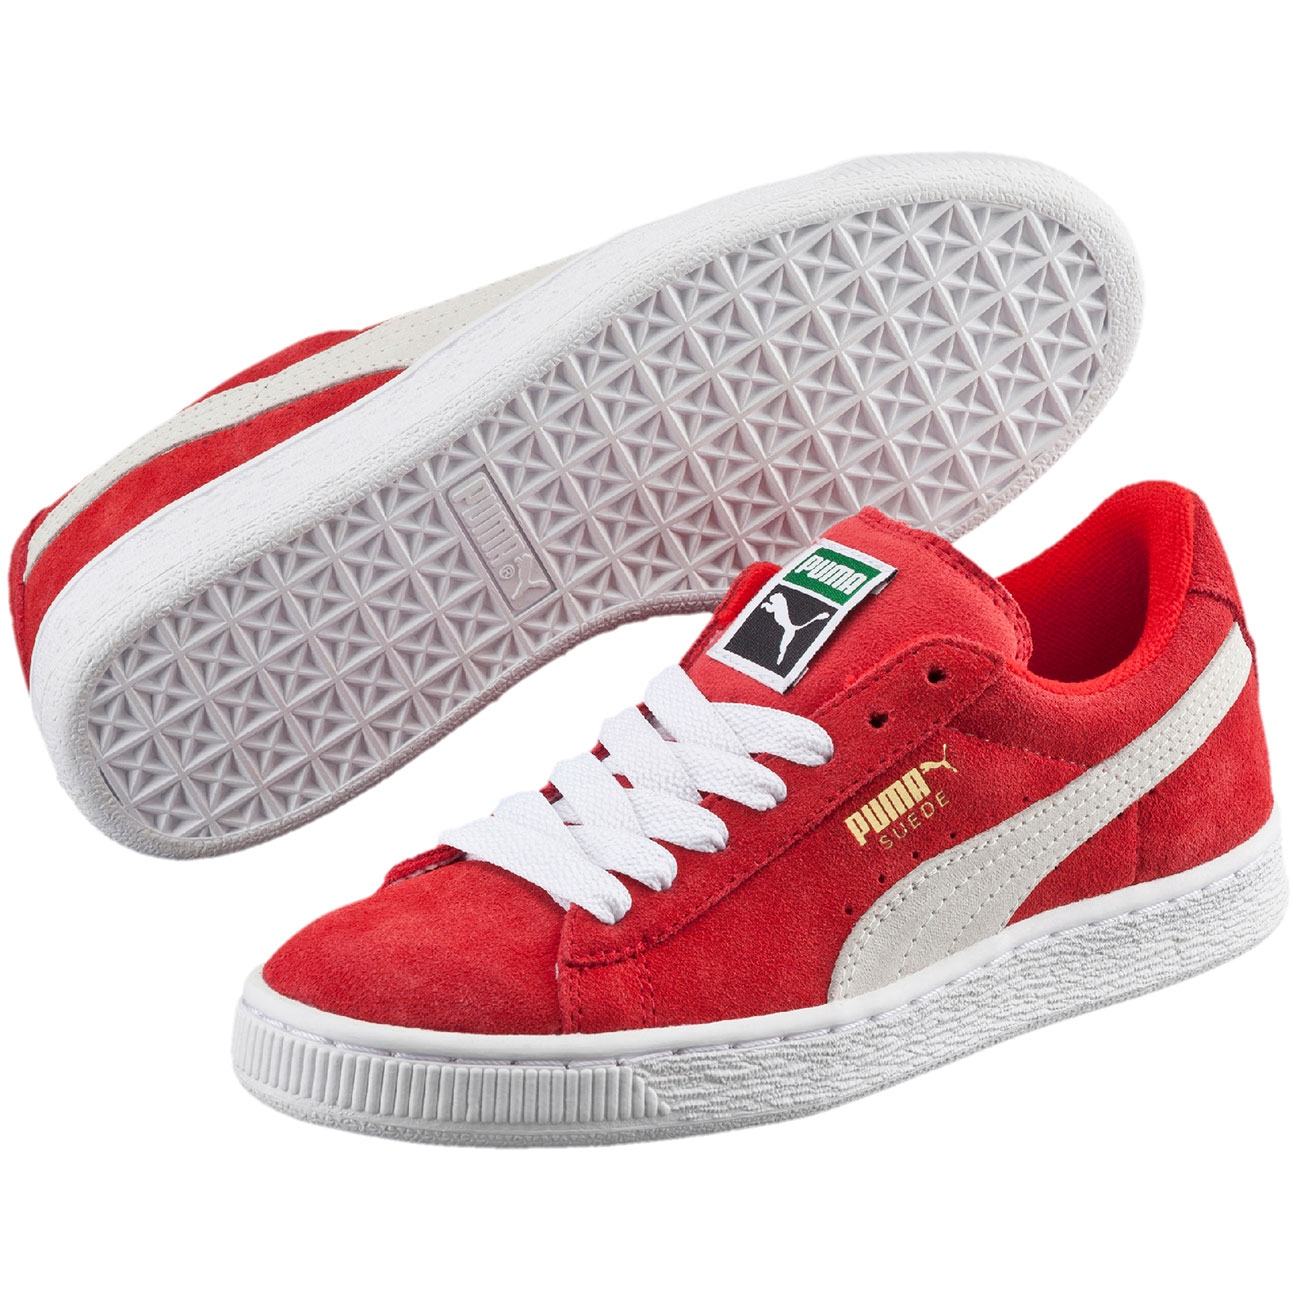 Puma Sneakers Suede Jr Red White